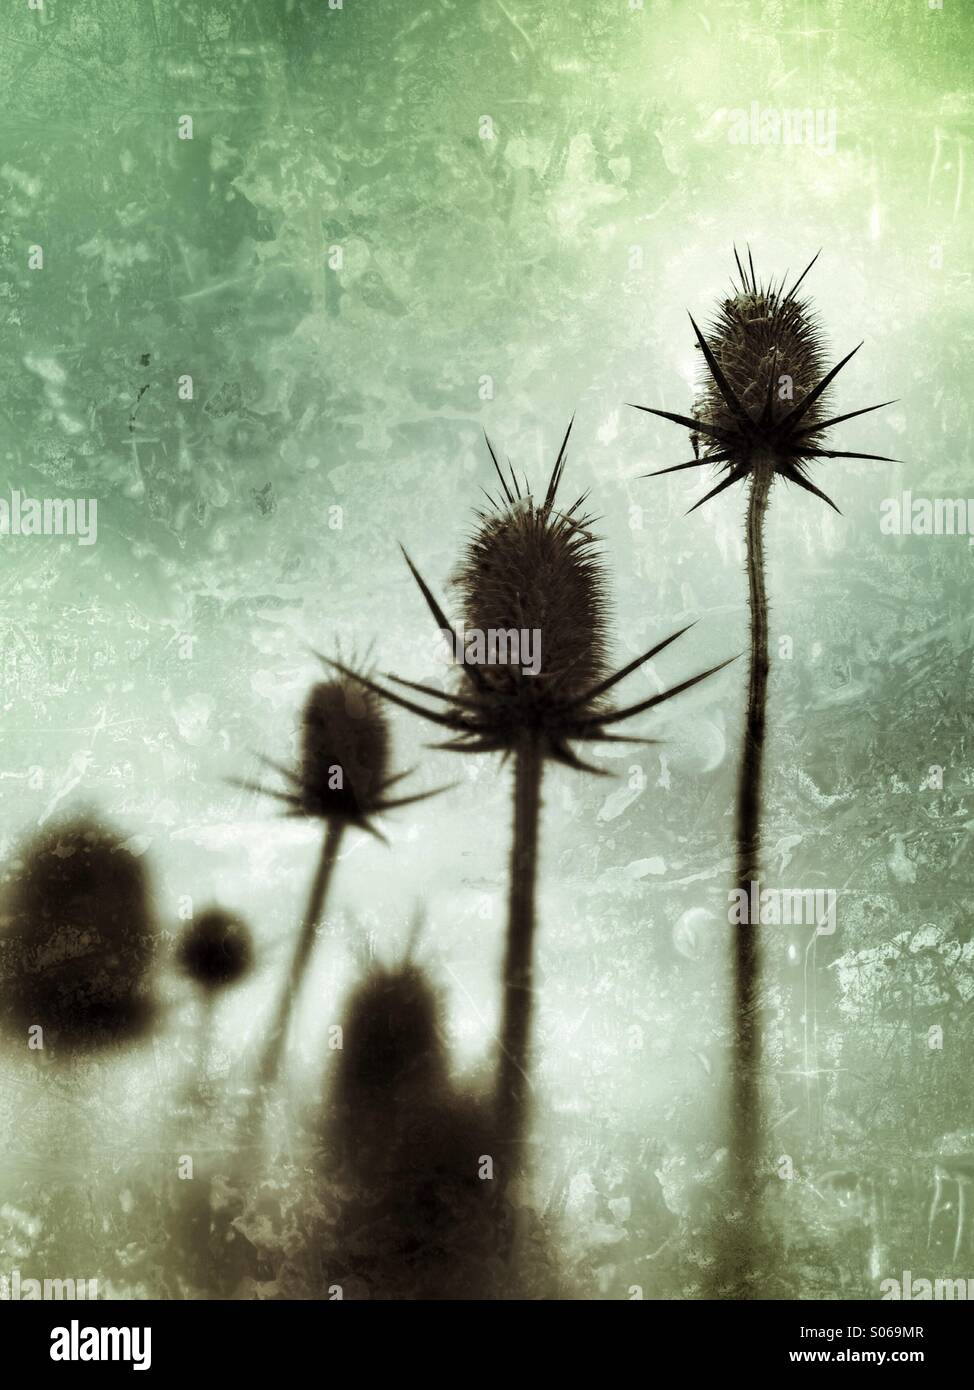 Dry weed pods reaching toward the sky. - Stock Image